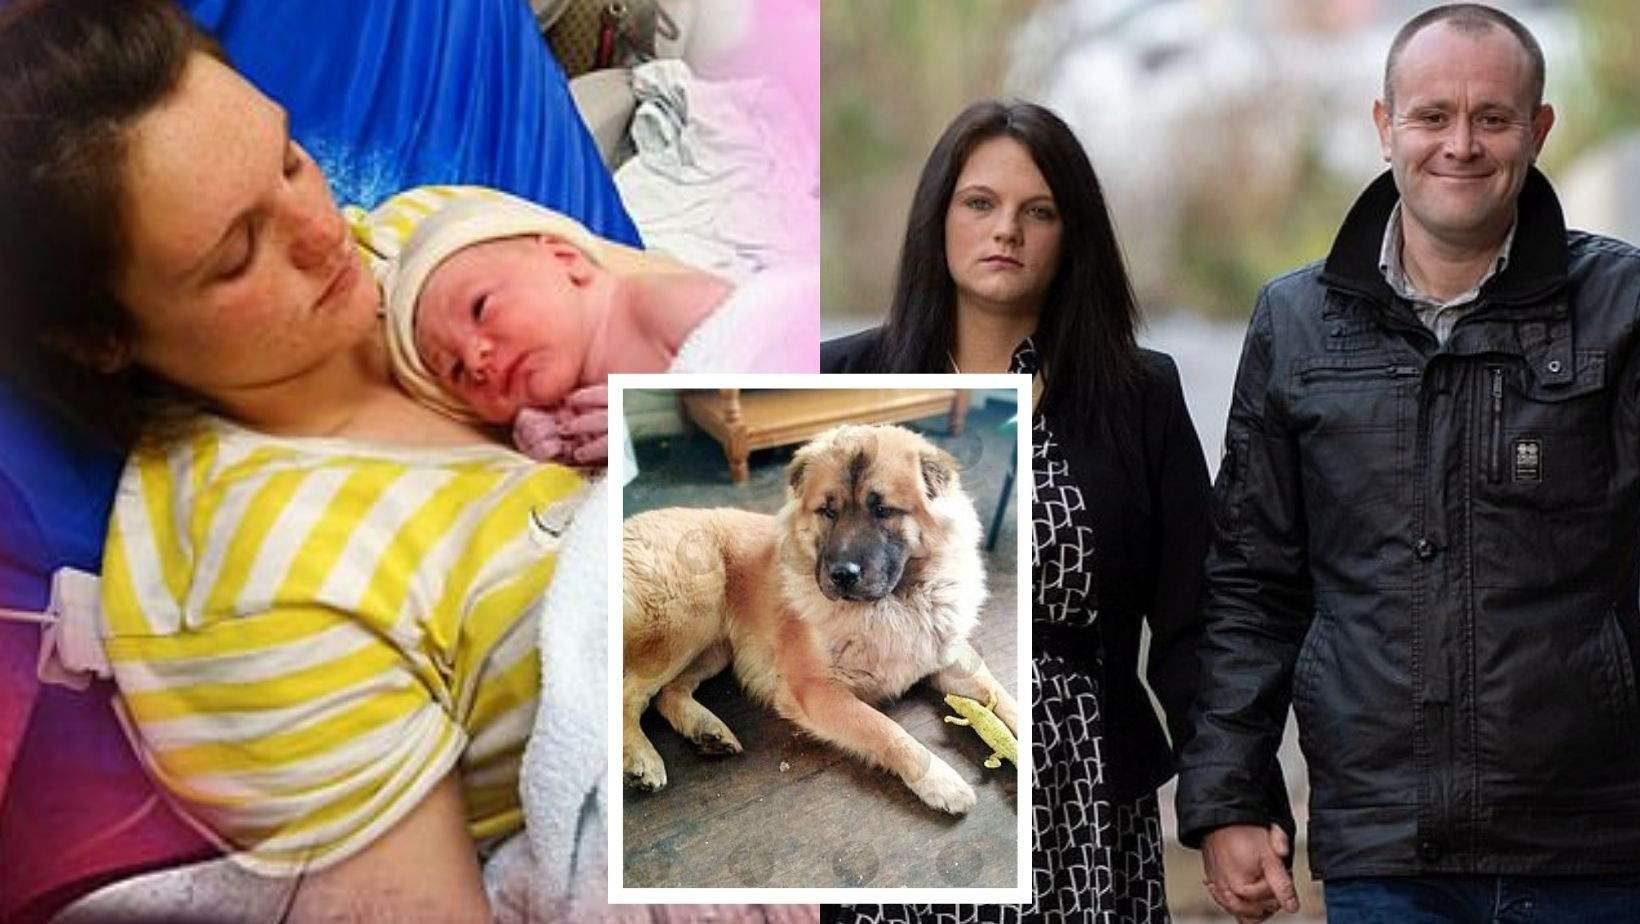 1 44.jpg?resize=412,232 - Parents Arrested After Jealous Family Dog Mauled Their 12-Day-Old Newborn Son To Death